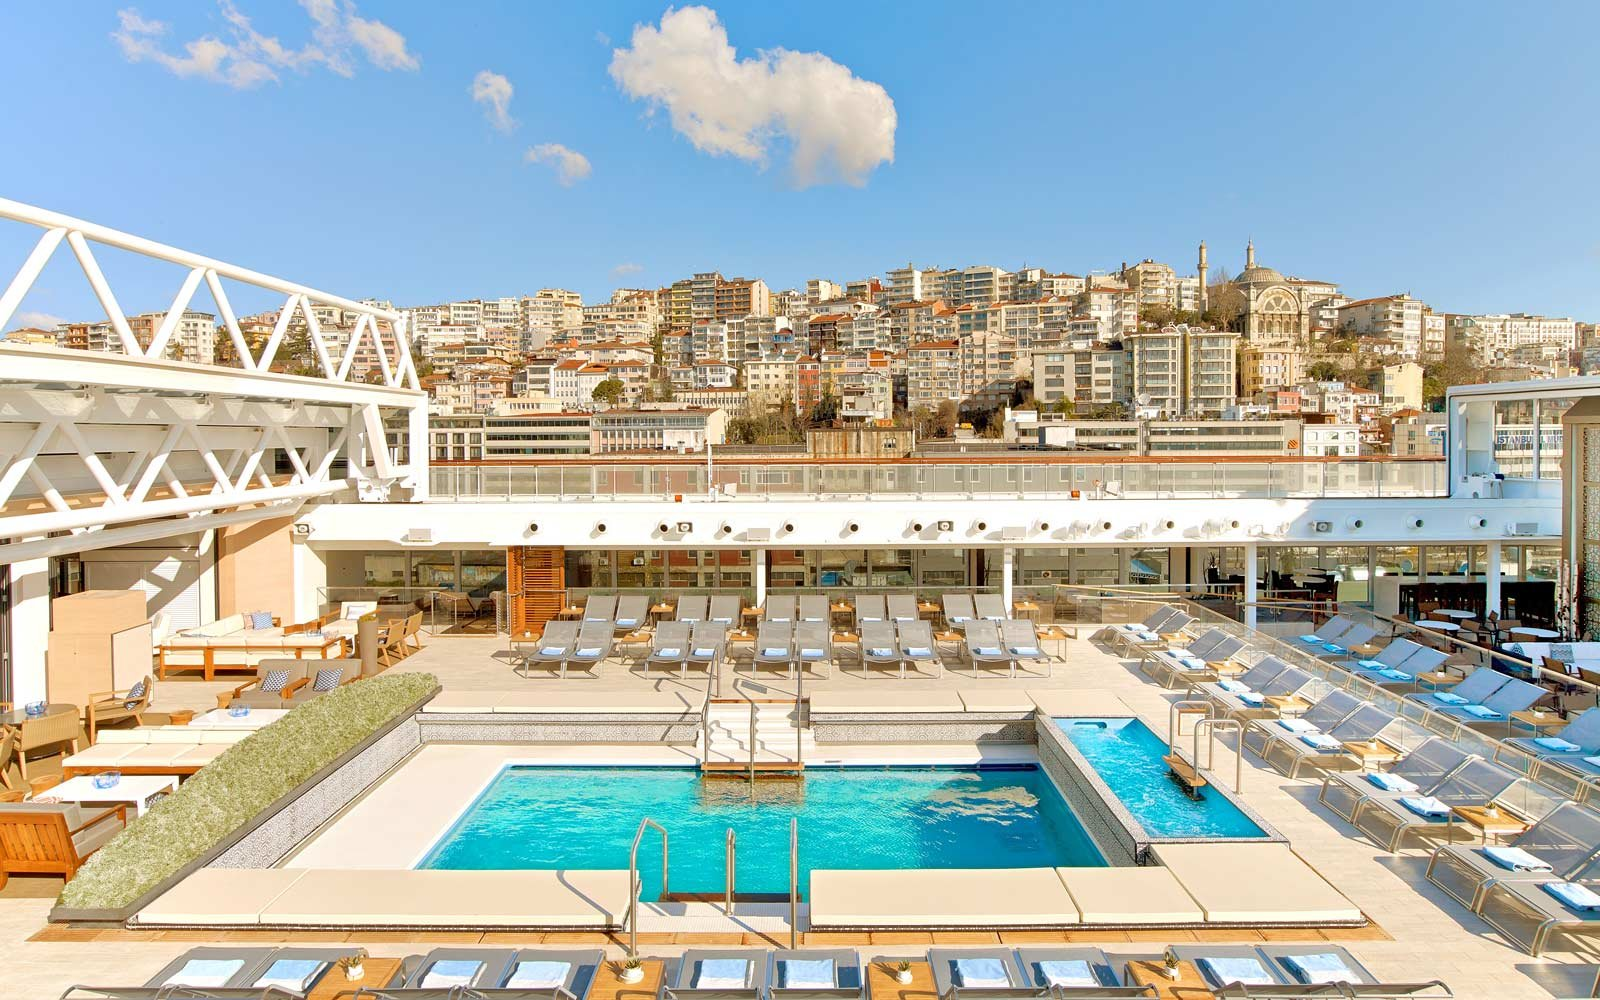 Five Things To Know About Viking Ocean Cruises Star